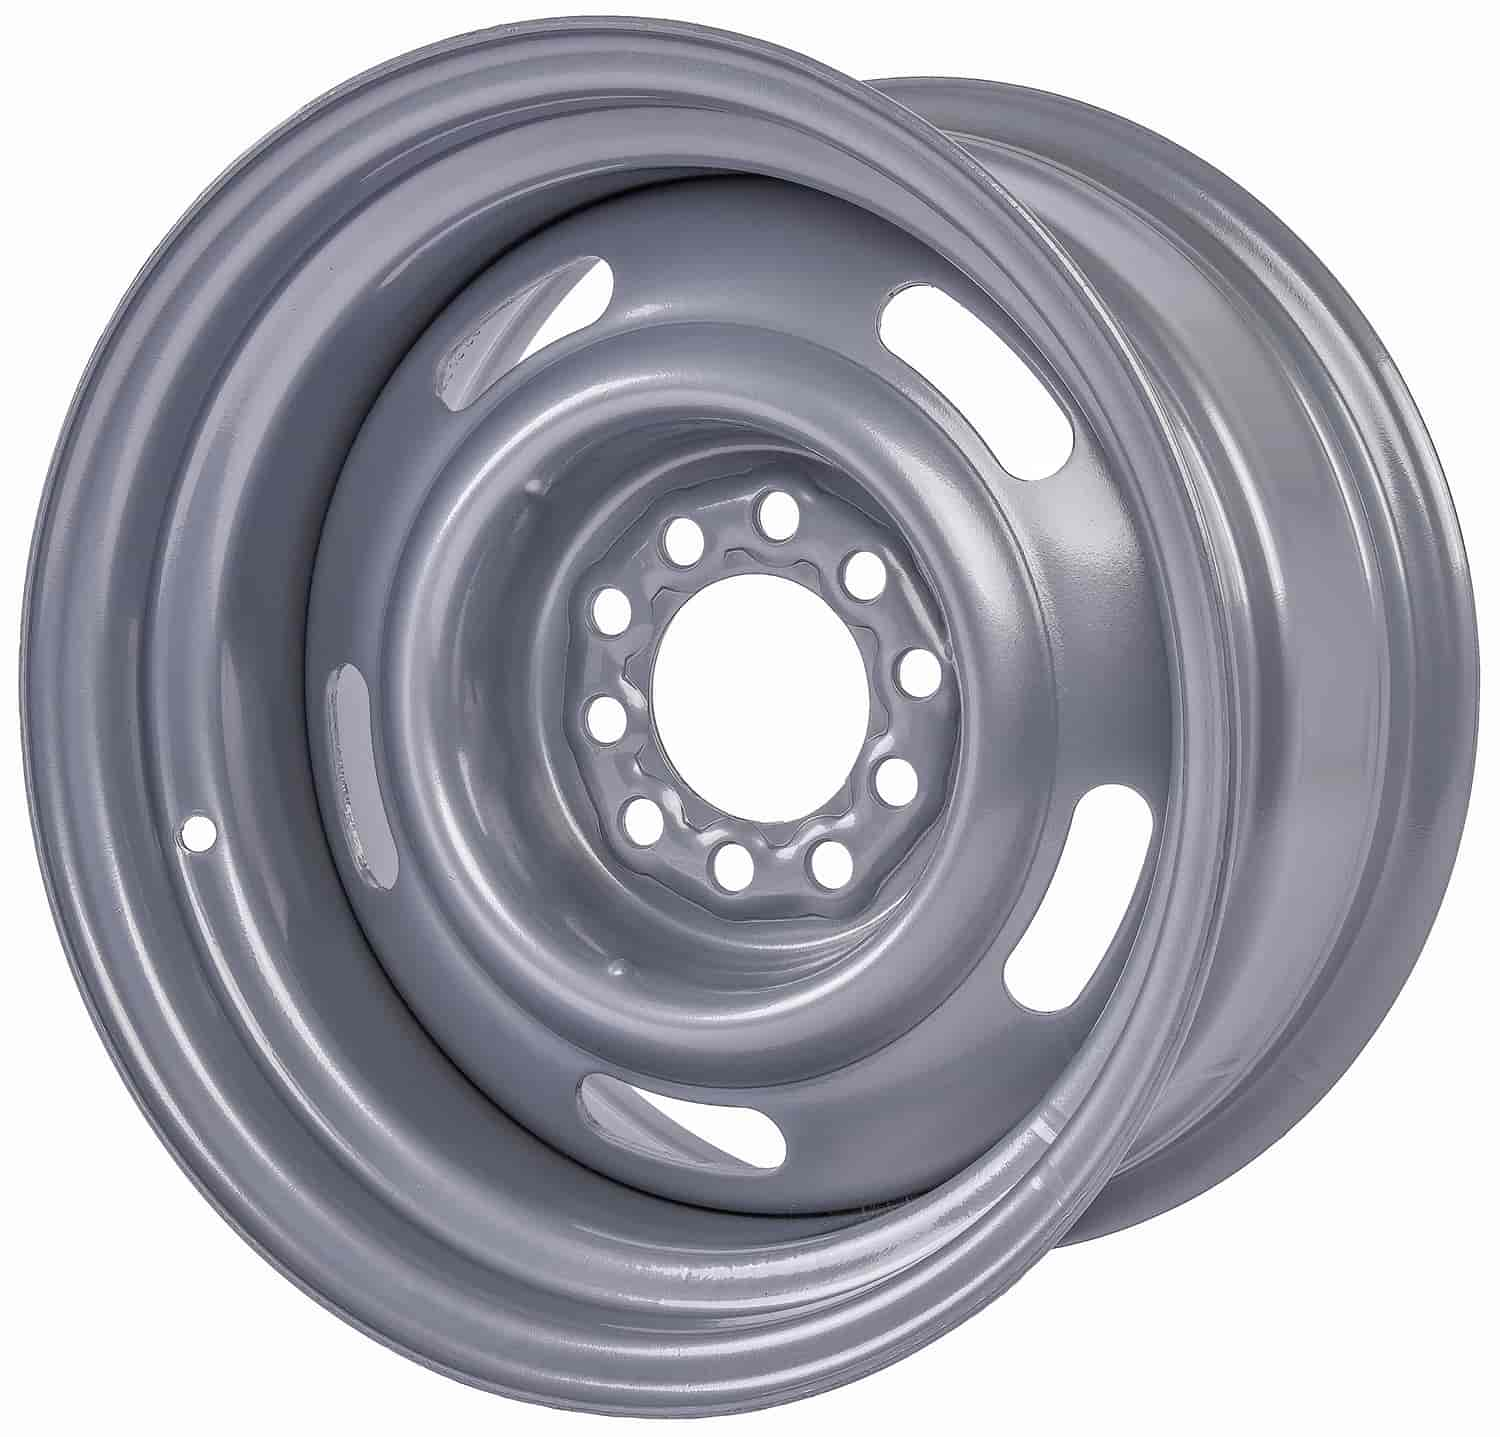 JEGS Performance Products Rally Wheel Diameter x Width 15